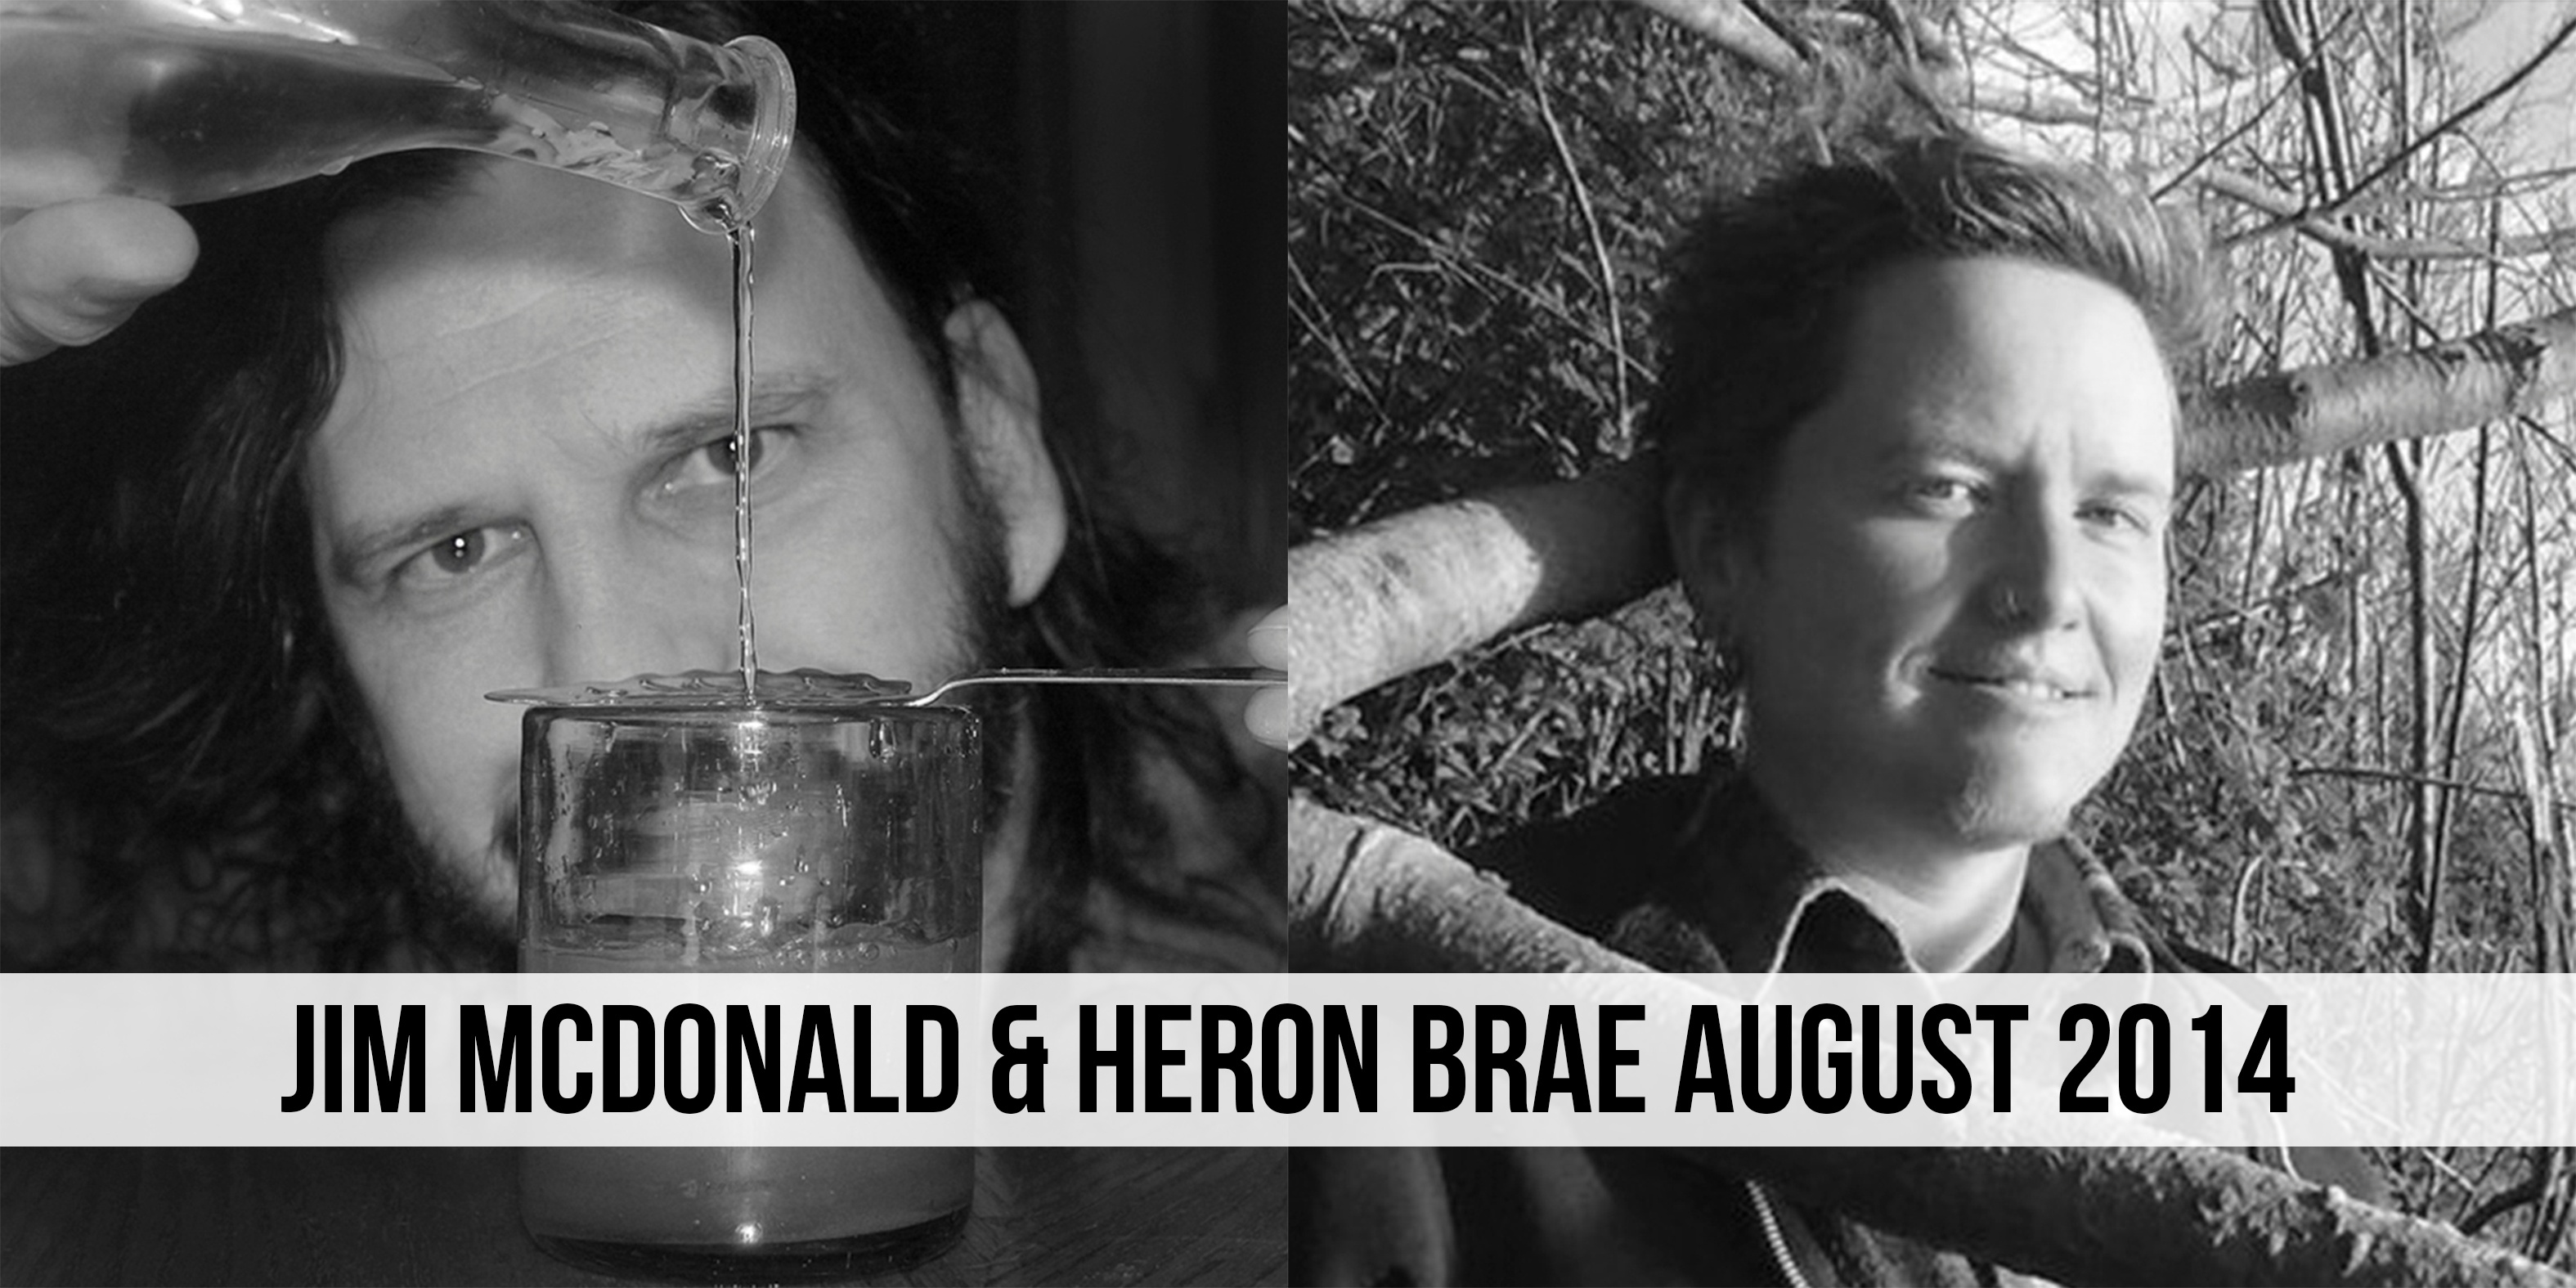 Jim McDonald & Heron Brae August 2014